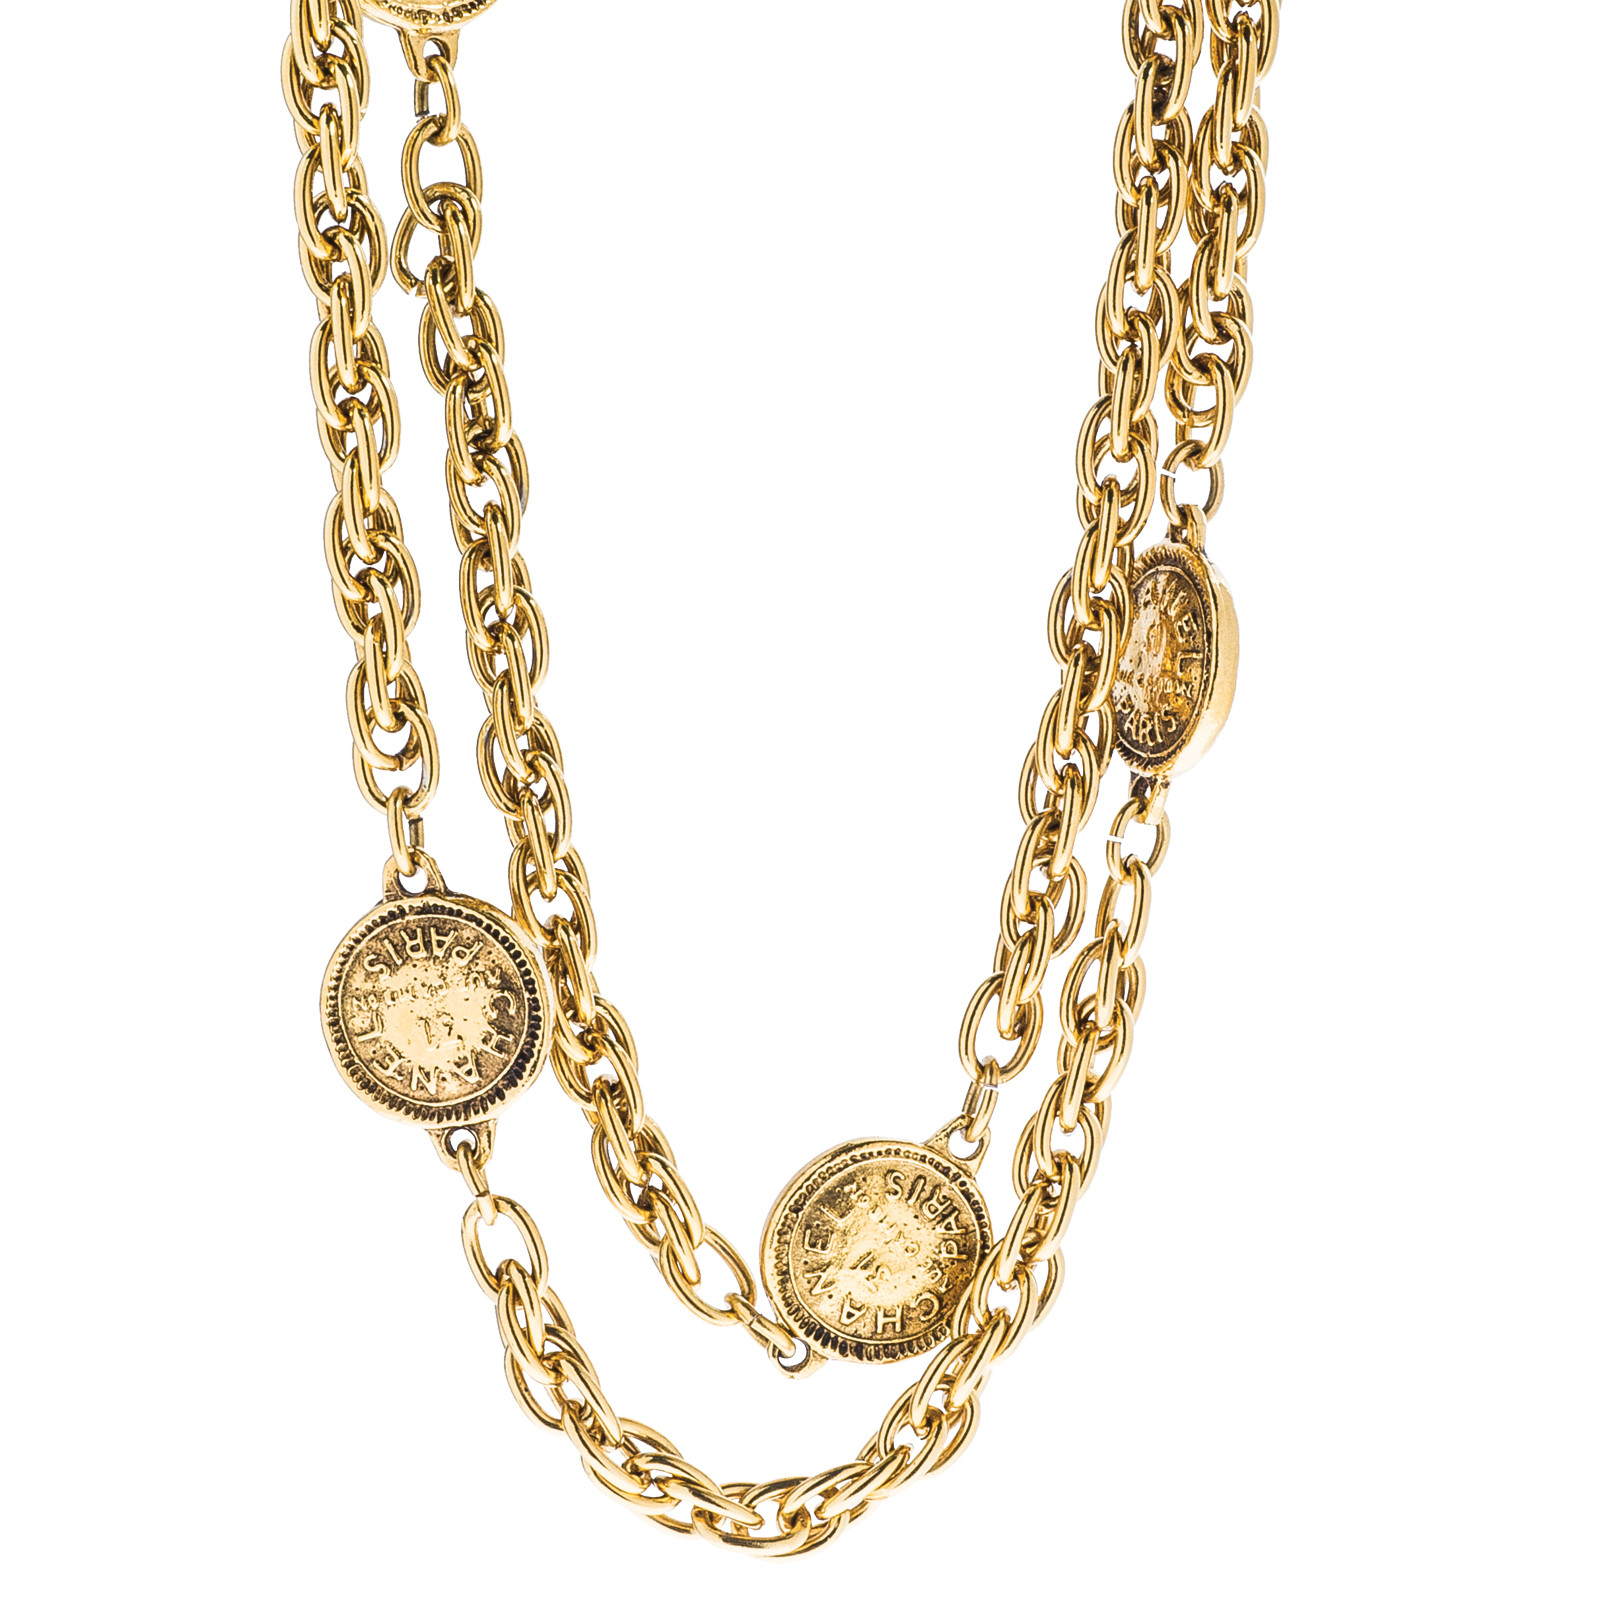 Vintage Chanel Coin Sautoir Necklace